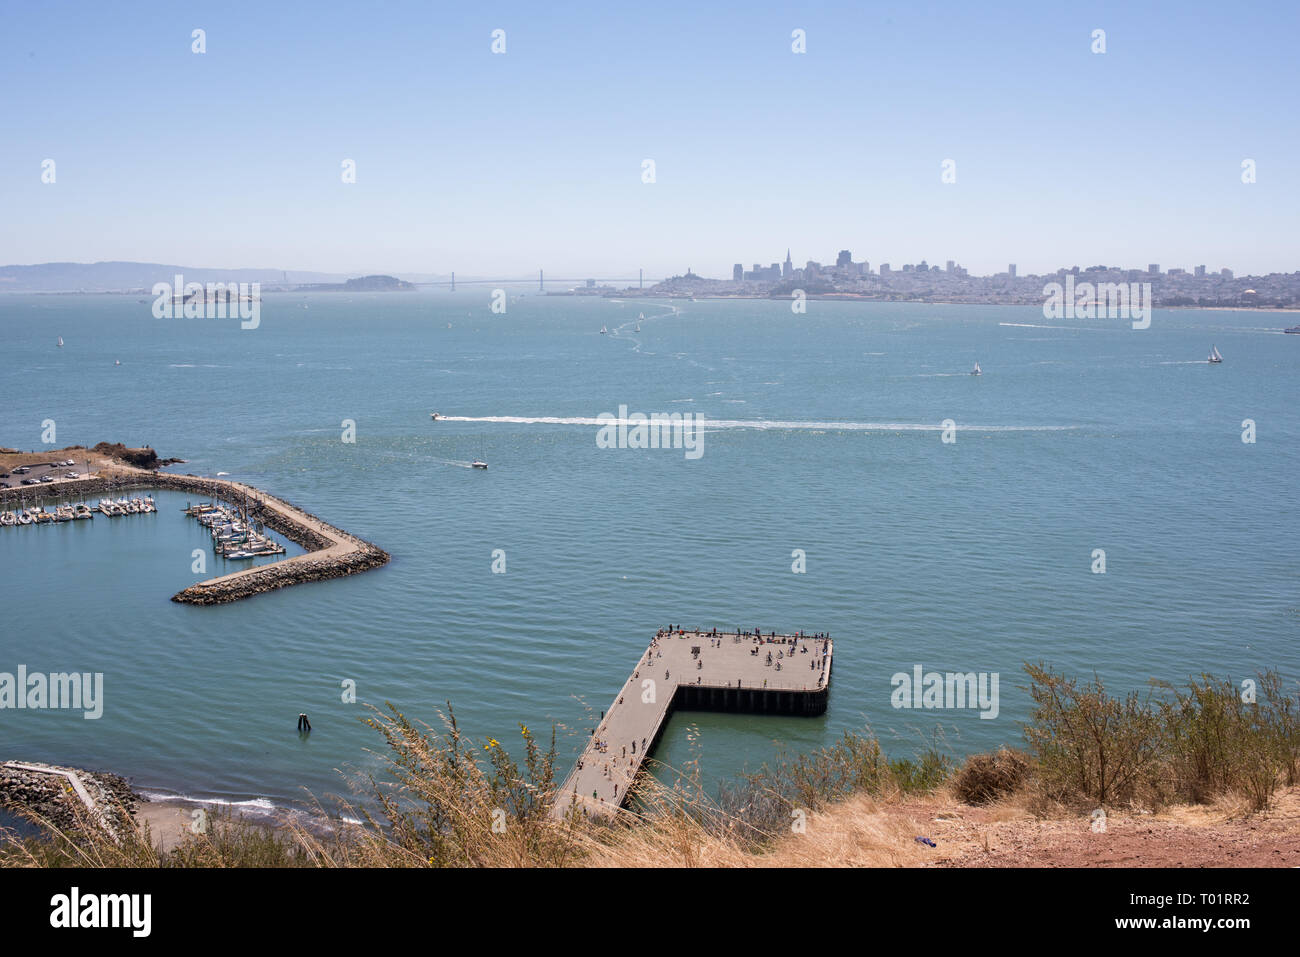 The iconic Golden Gate Bridge of San Francisco, California is seen here on a rare, sunny day, revealing the entire expanse of the bridge. - Stock Image